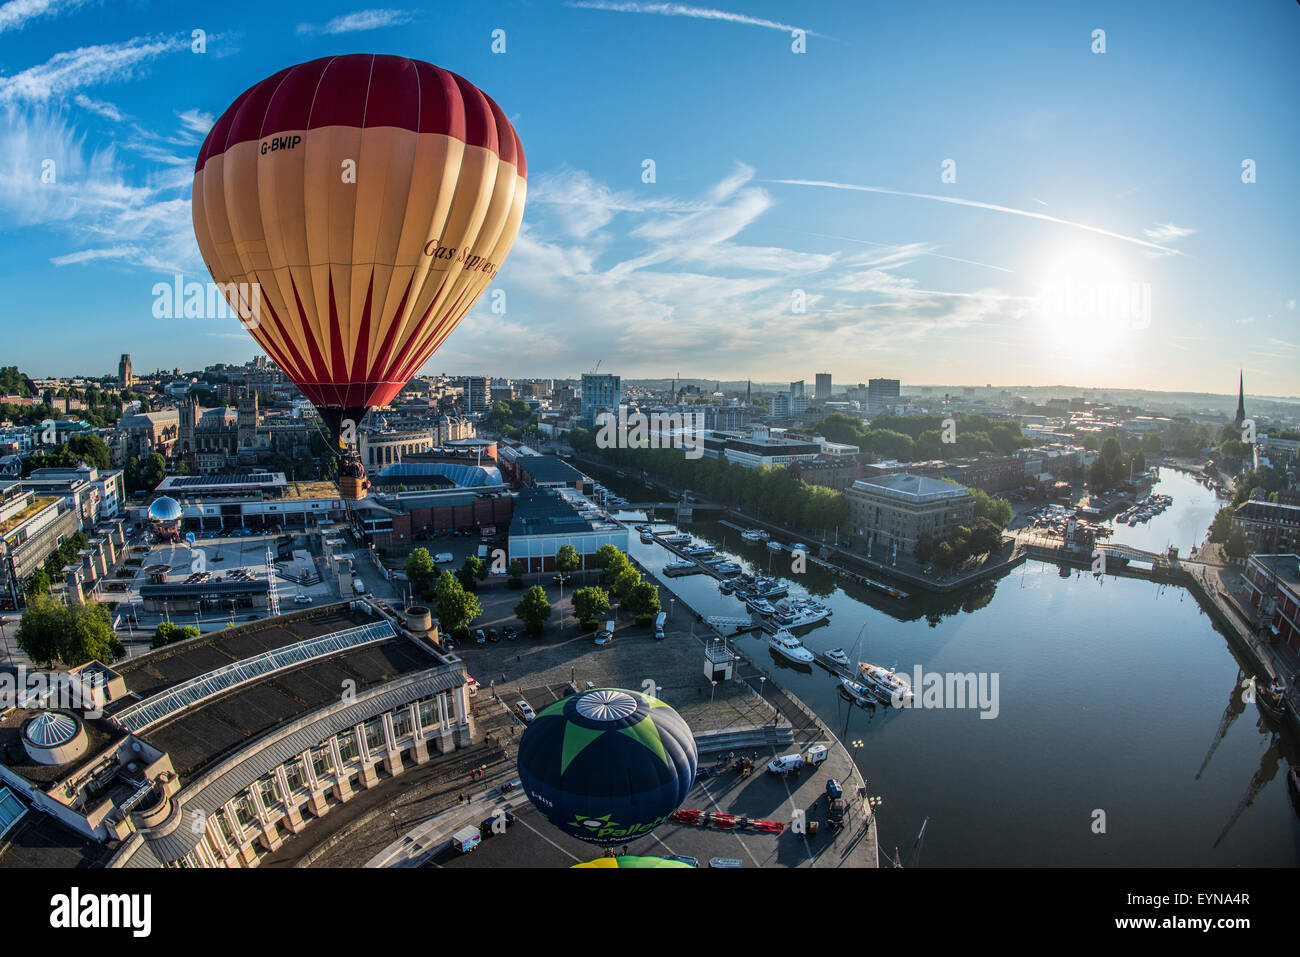 Bristol, UK. 31st July, 2015. Hot air balloons take to the skies over Bristol ahead of the 37th International Balloon Fiesta. Stock Photo